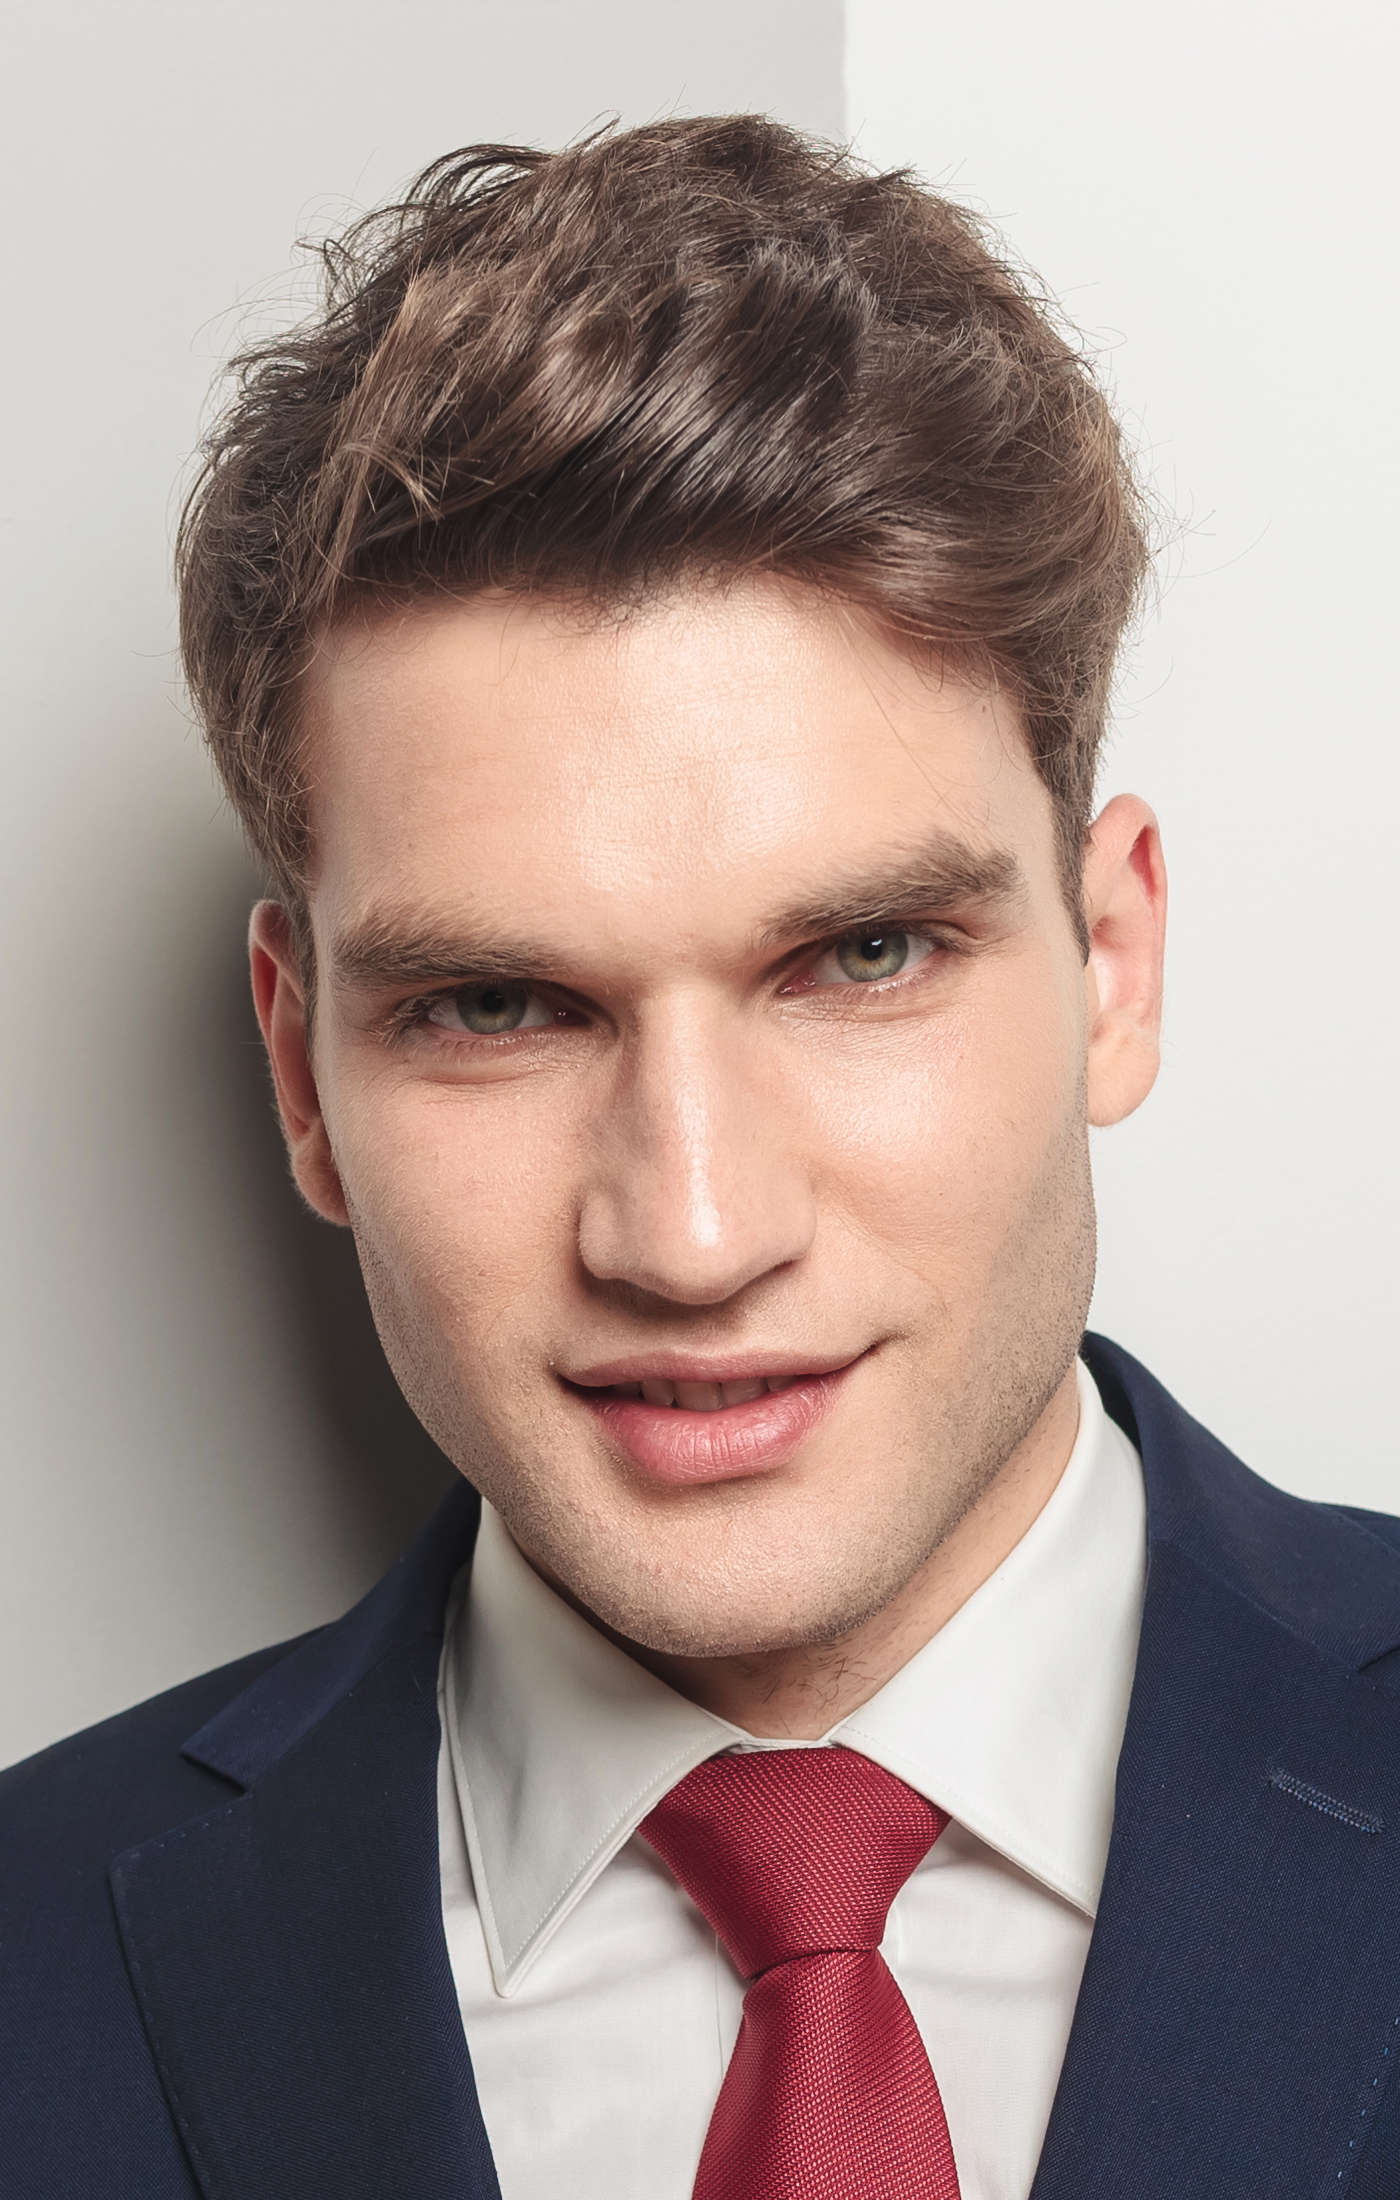 Top 10+ Business Hairstyles for Men